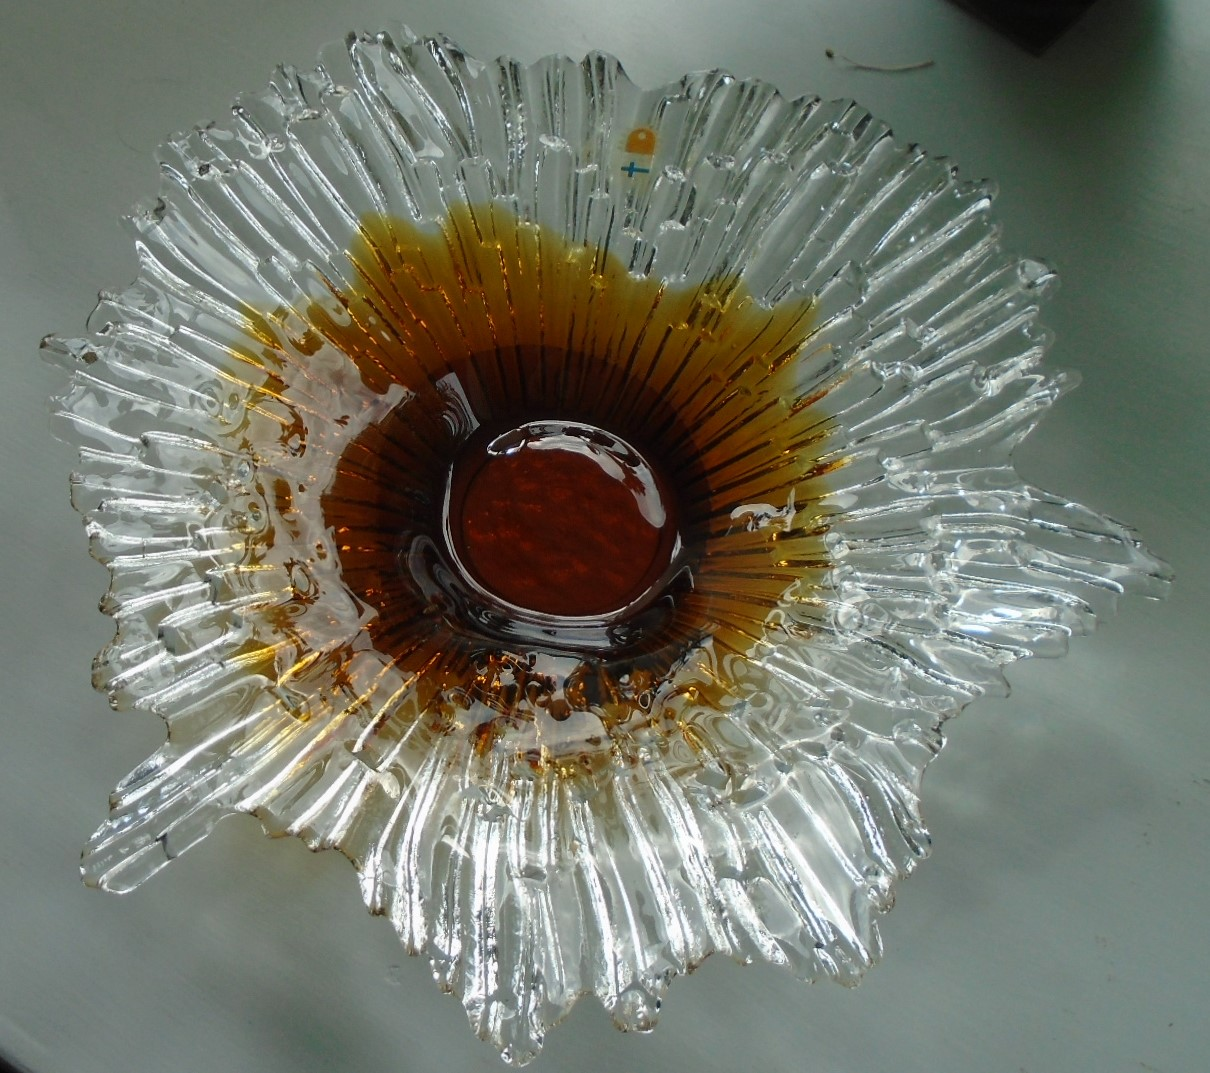 Finnish Signed 1970s HUMPPILA GLASS BOWL from designer Tauno Wirkala